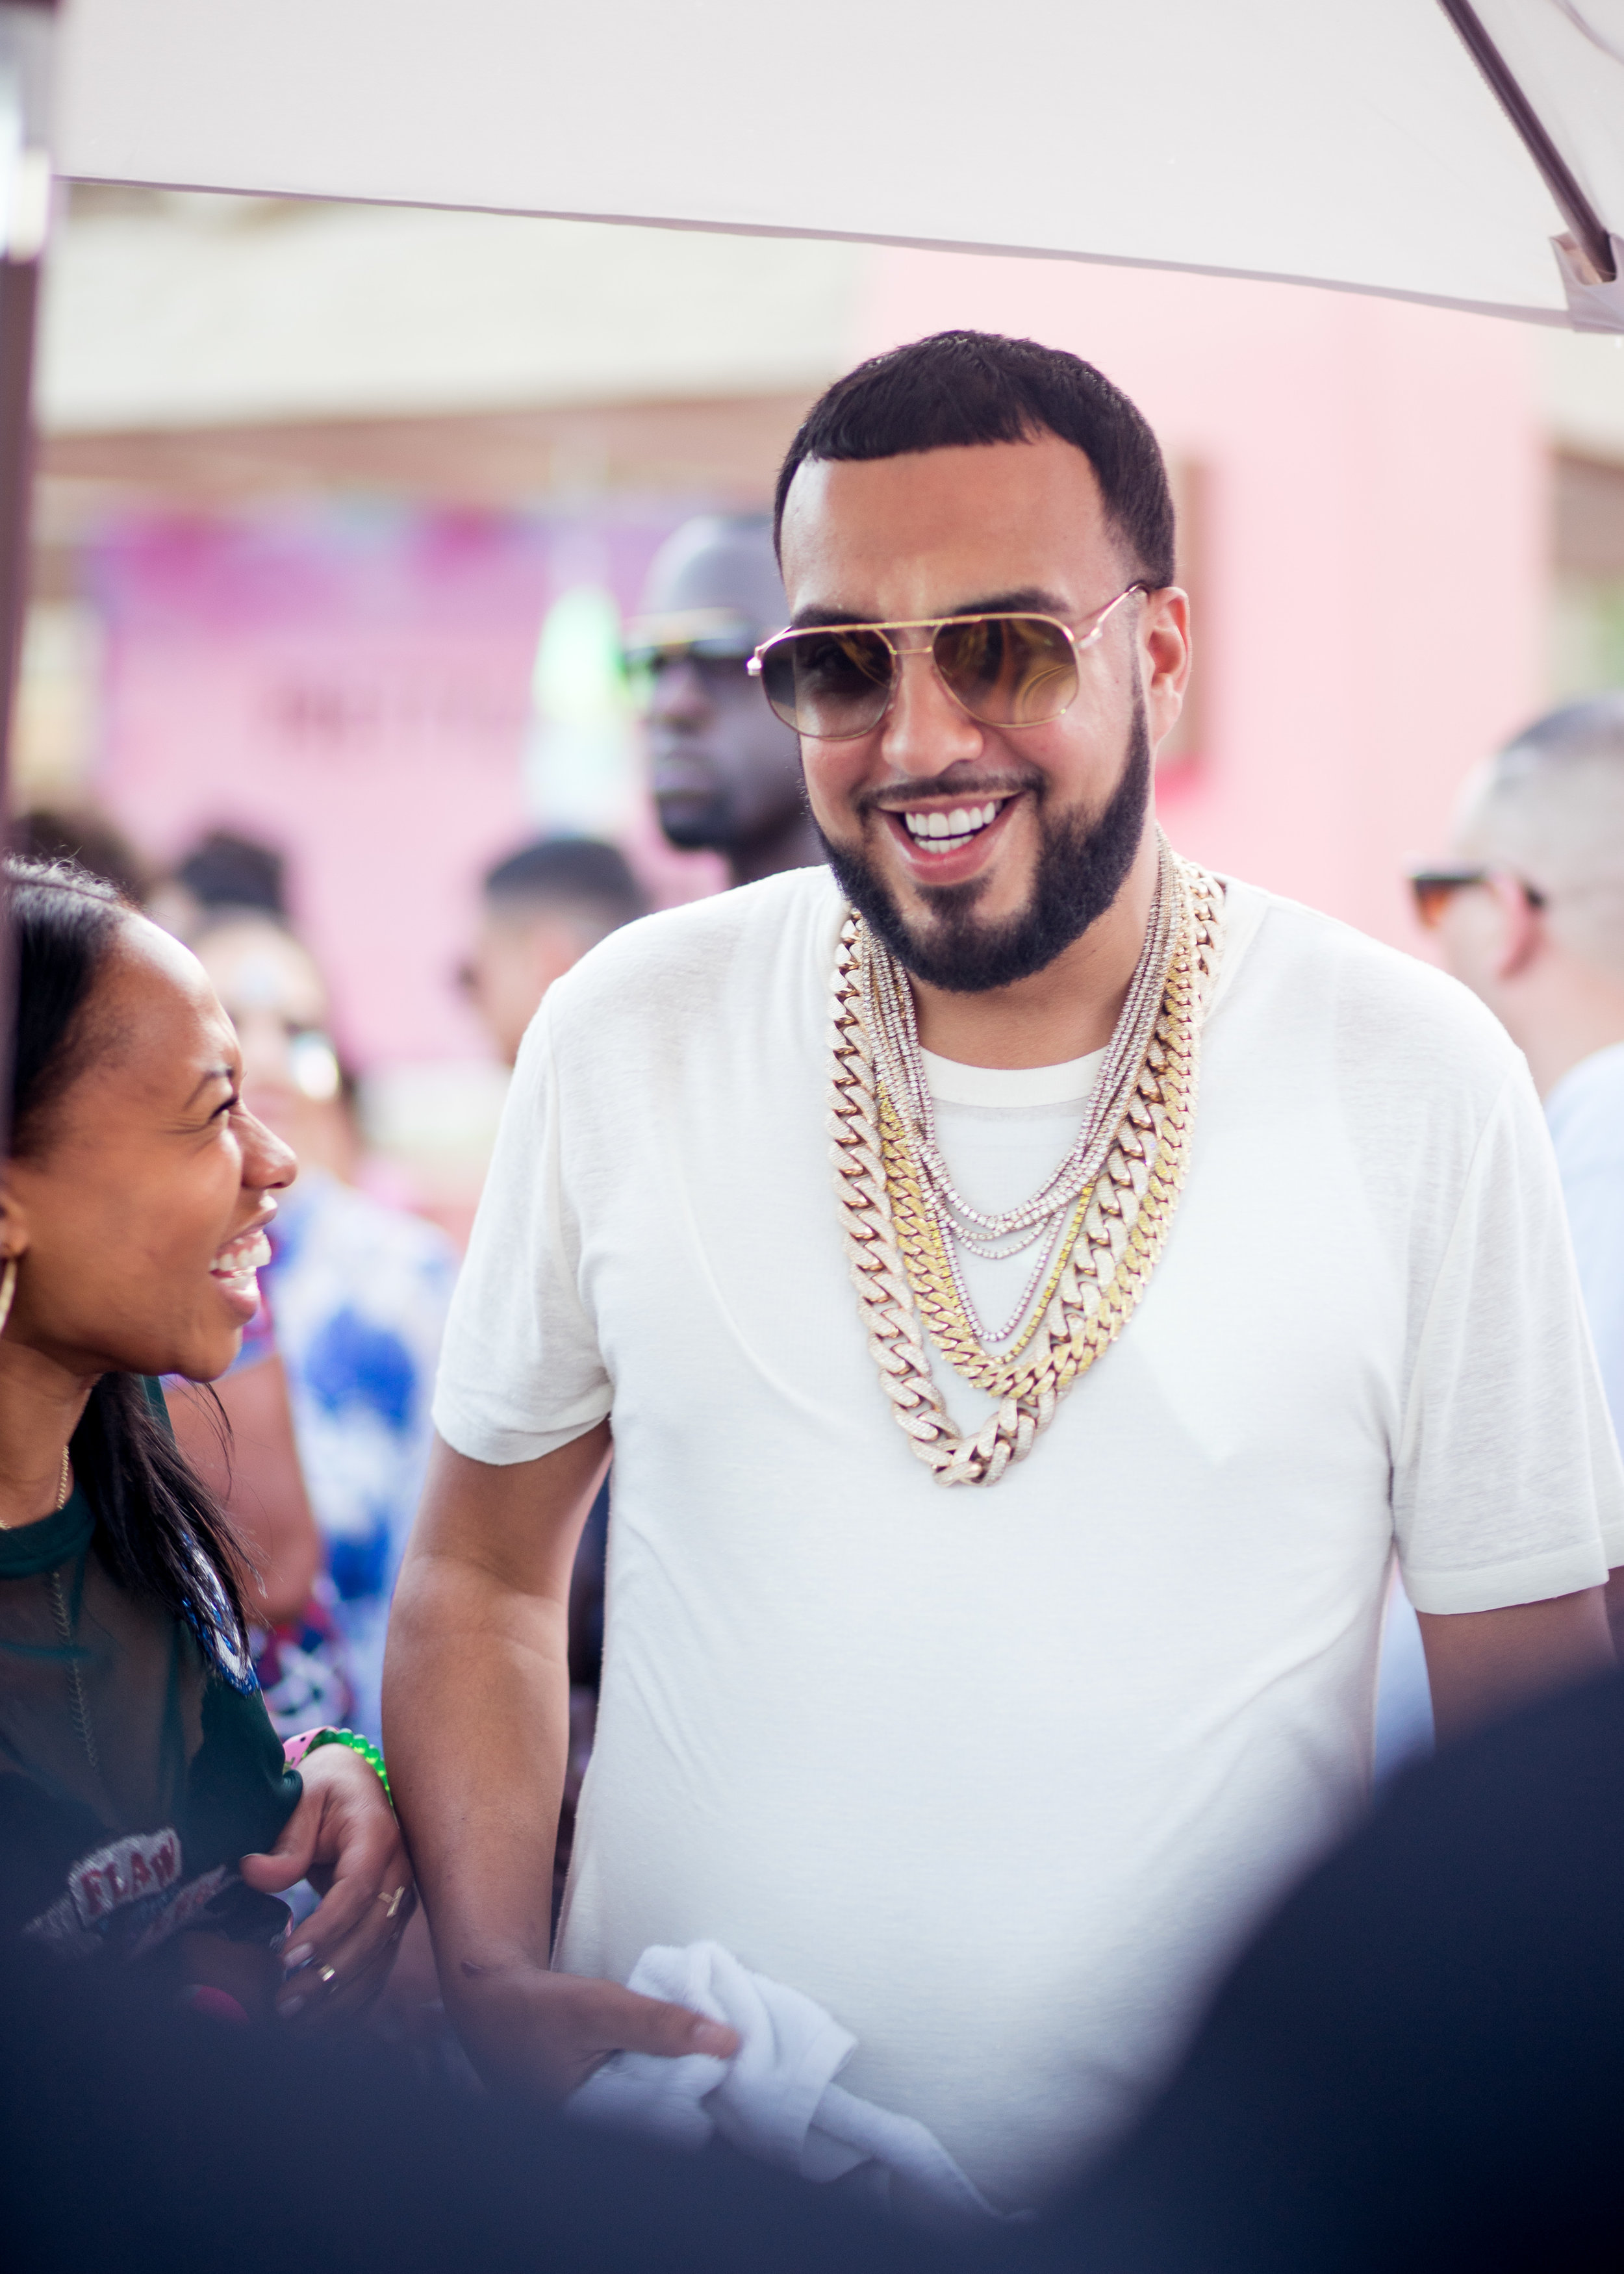 Ultimate Hollywood Coachella Poolside Party french montana having fun.jpg